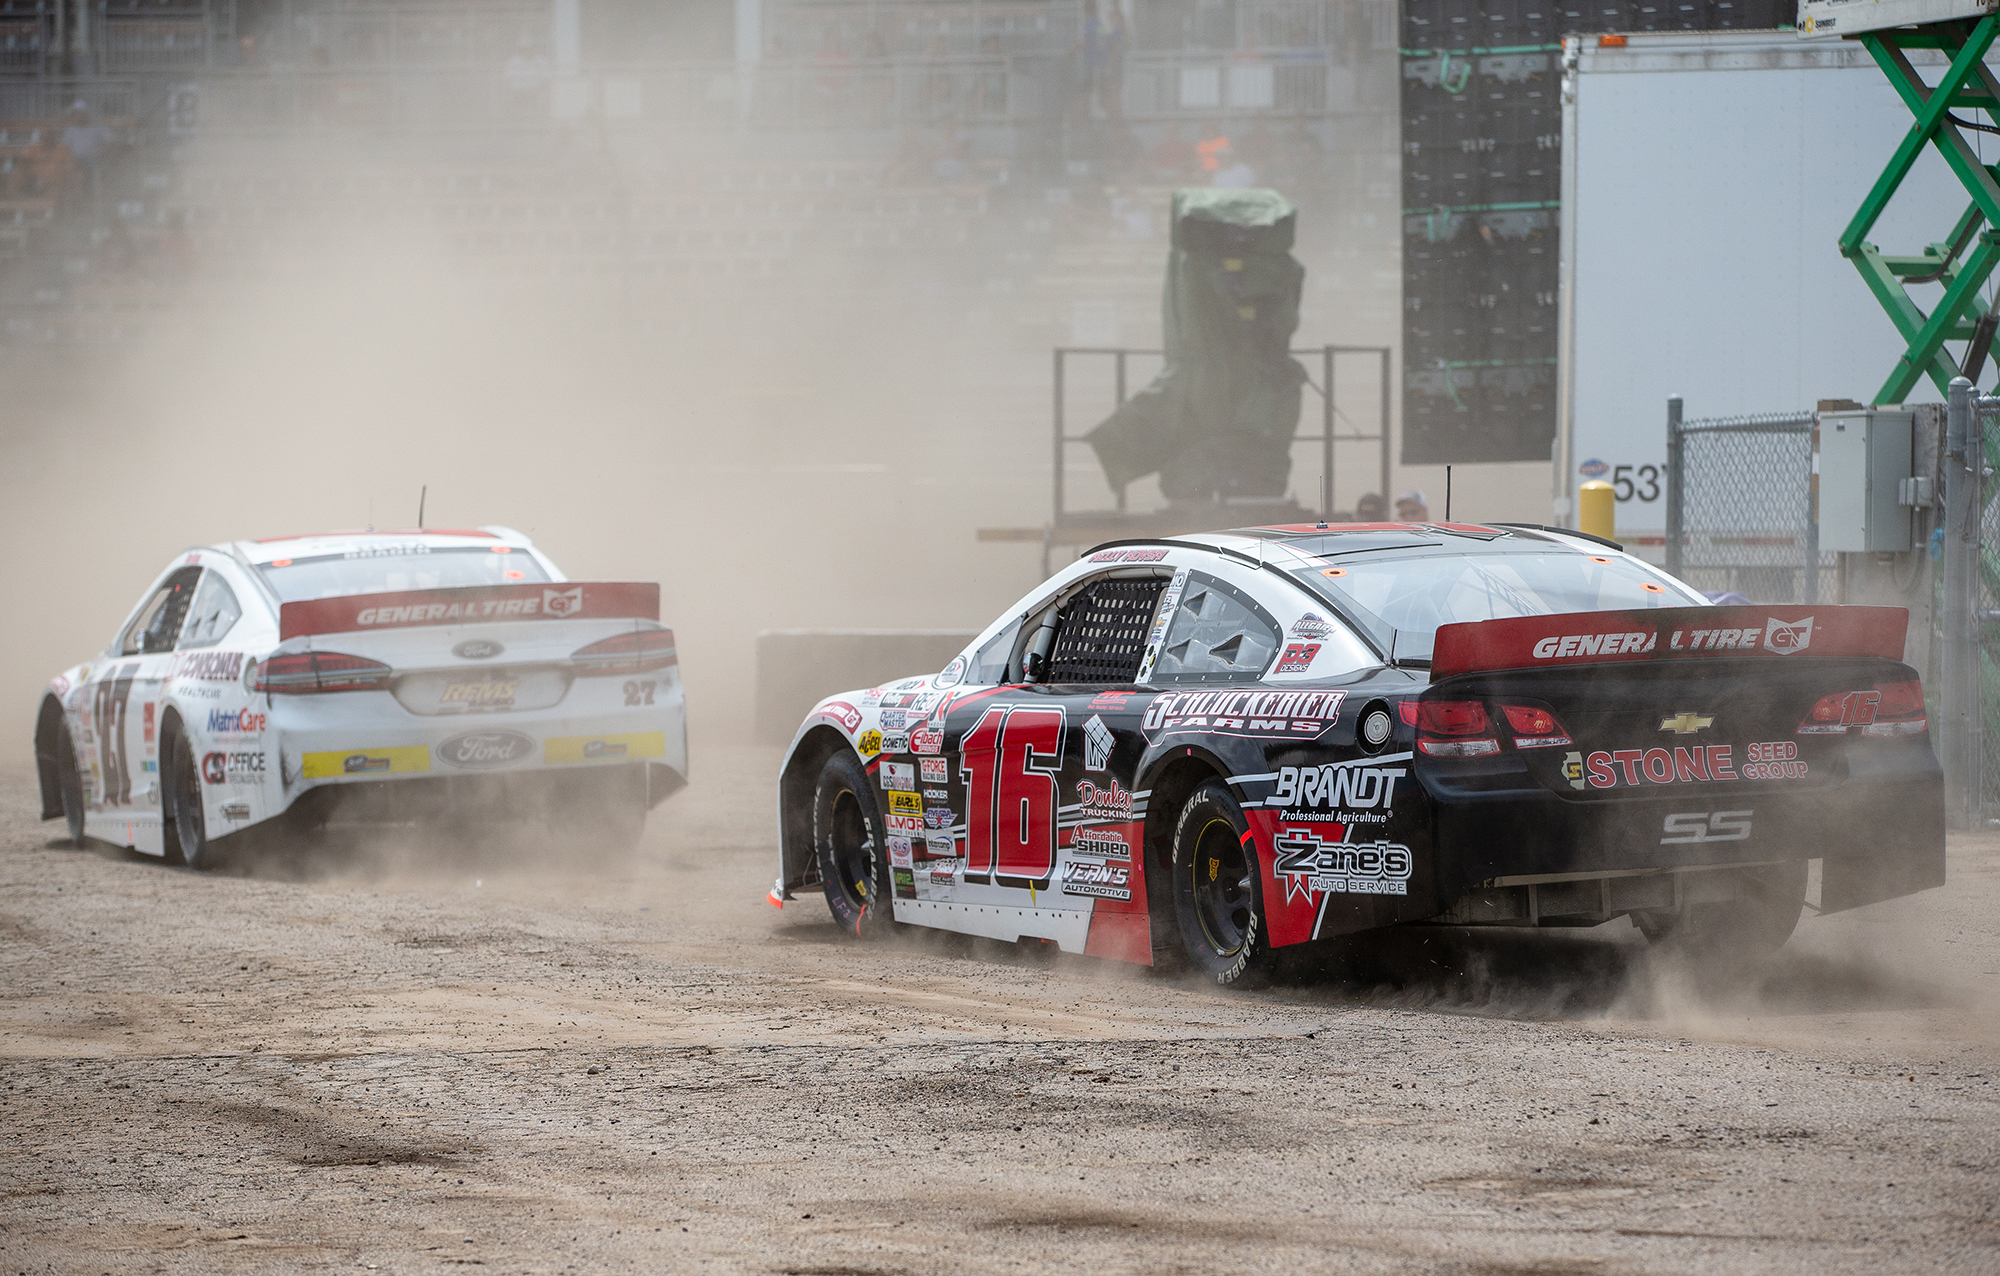 Kelly Kovski heads out of the pits in a cloud of dust in a caution during the ARCA Racing Series Allen Crowe 100 on the Springfield Mile during the Illinois State Fair at the Illinois State Fairgrounds, Sunday, Aug. 19, 2018, in Springfield, Ill. [Justin L. Fowler/The State Journal-Register]